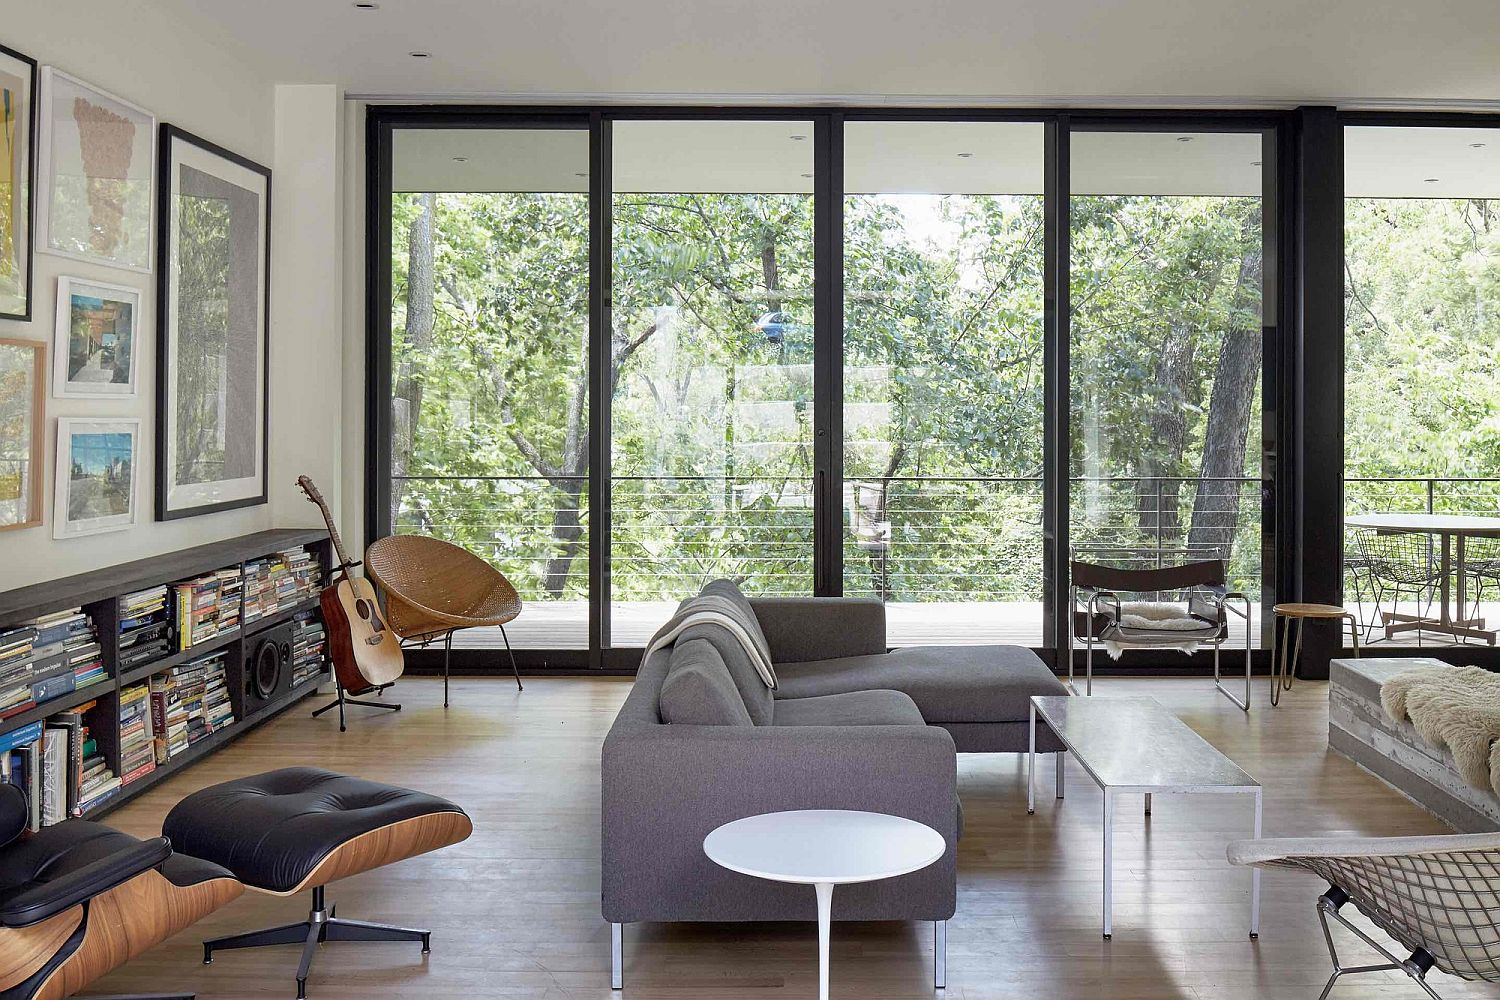 Contemporary living room with Eames Lounger and a stylish bookshelf